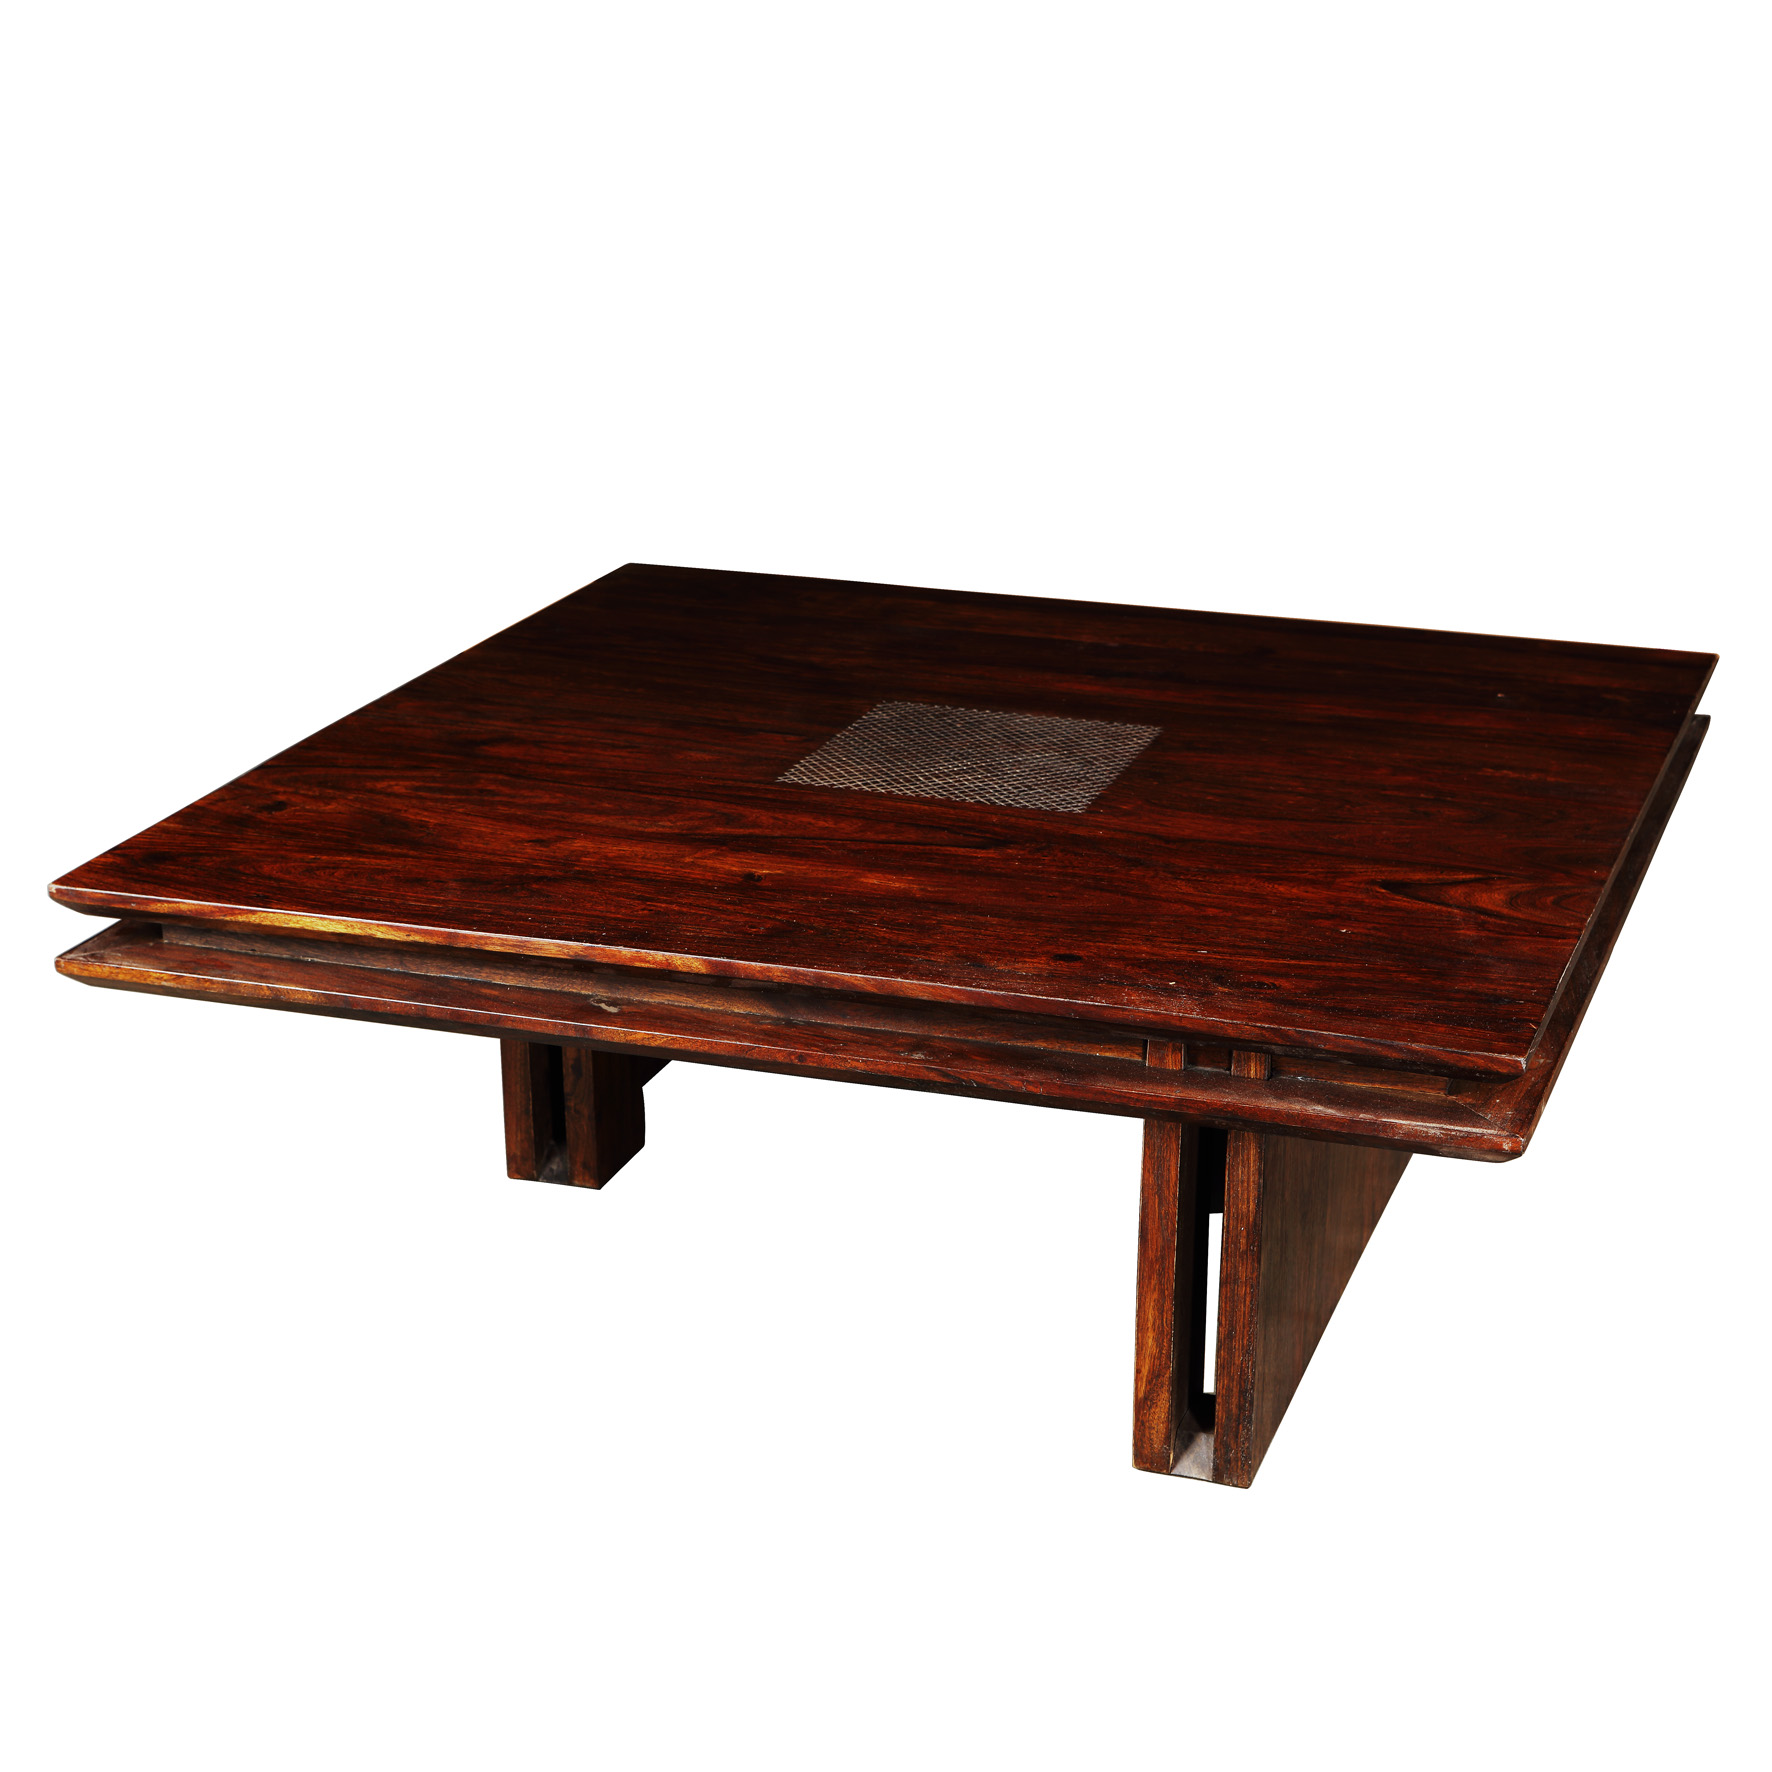 La table basse tribal la maison coloniale - Tables basses modulables ...